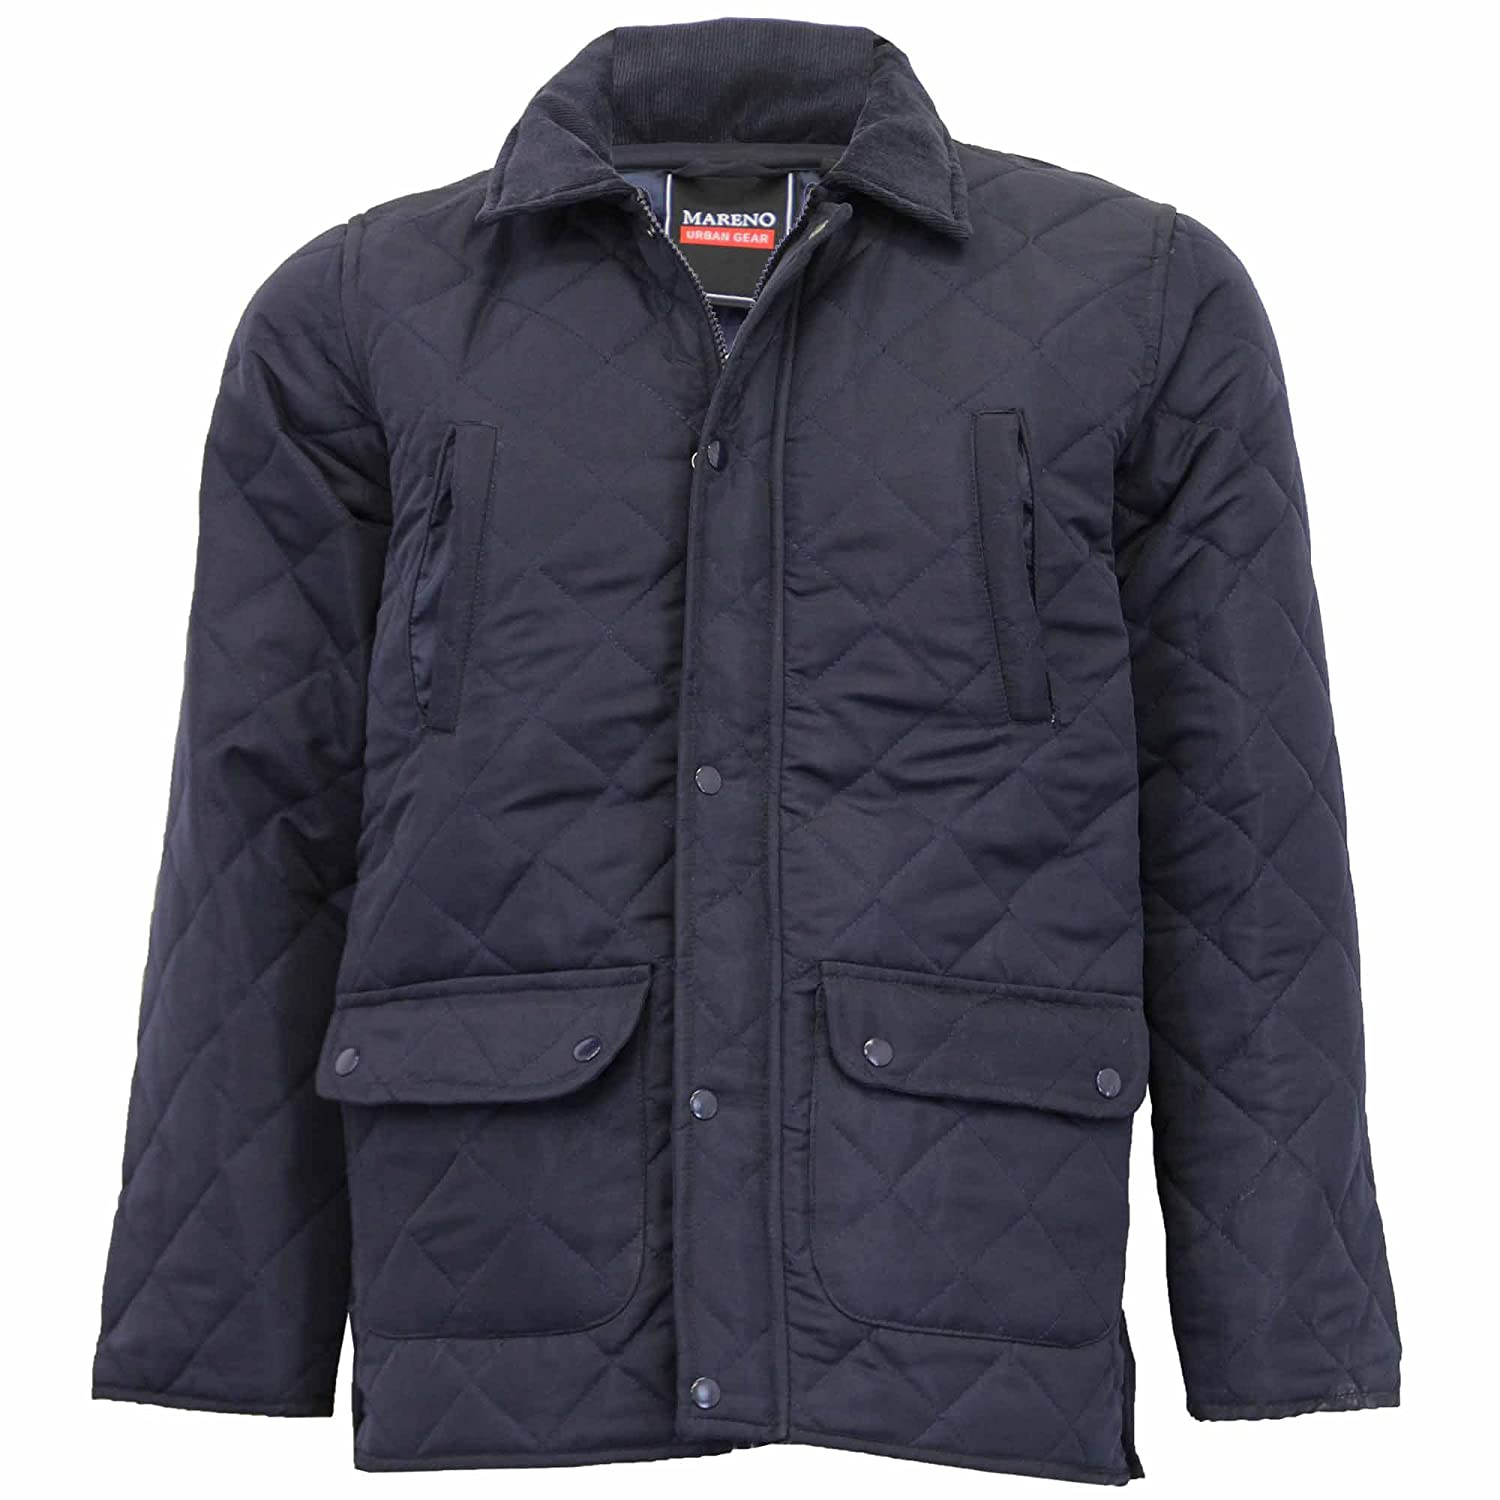 Mareno Mens Padded Diamond Quilted Jacket MARQUILT at Amazon Mens Clothing store: